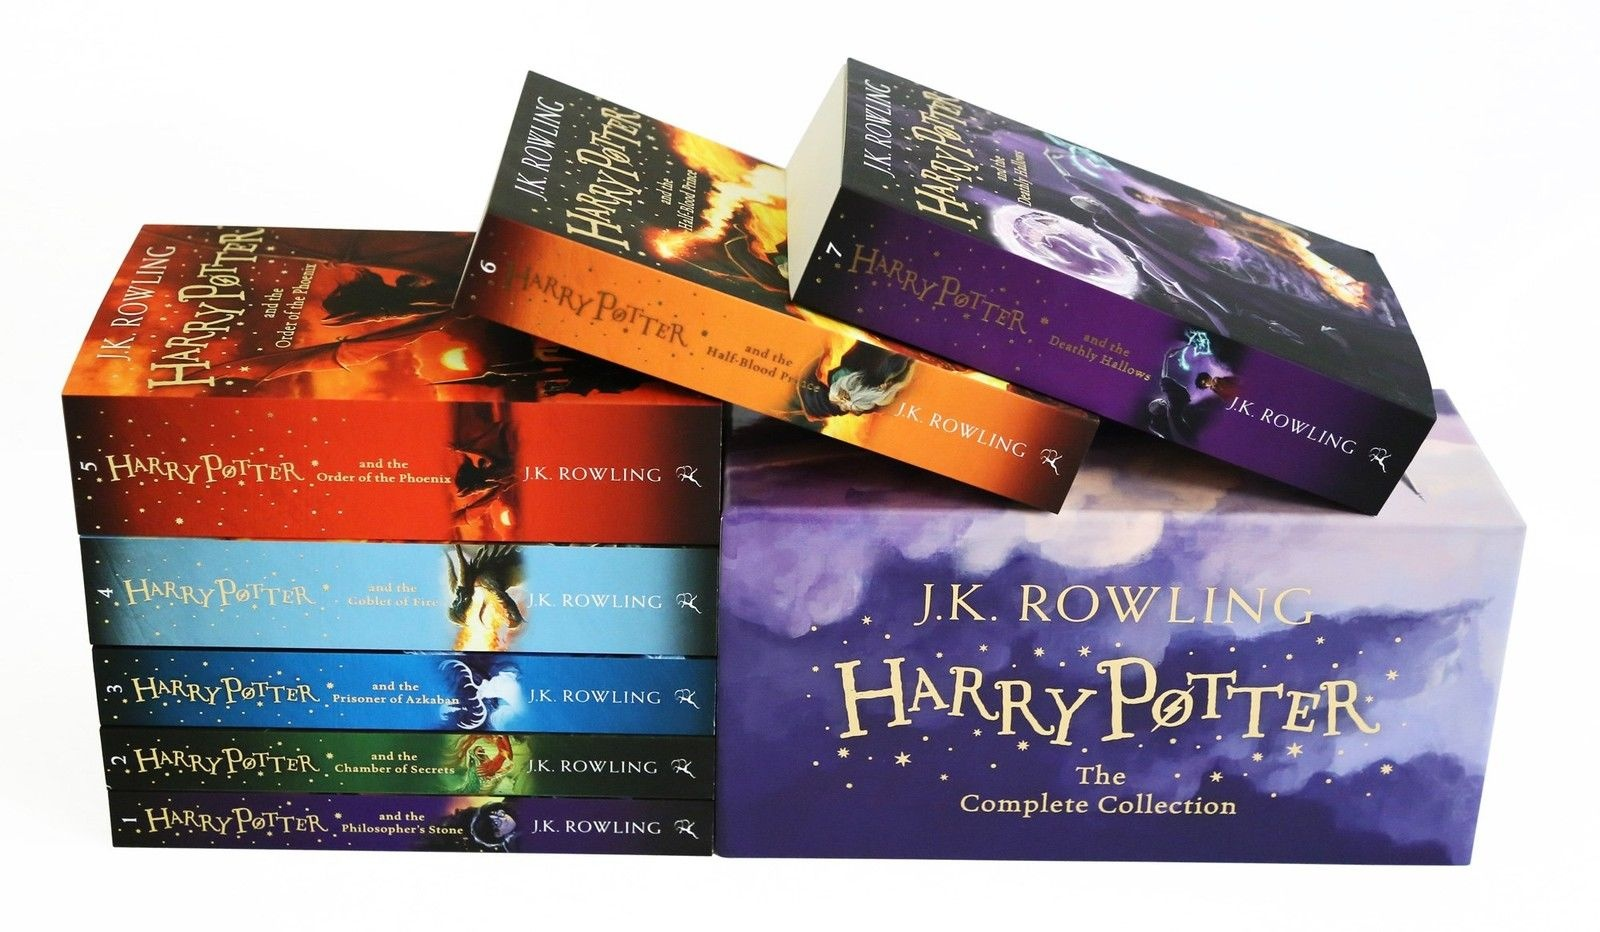 Harry Potter Signature Edition Paperback Boxed Set x 7 by J.K. Rowling, ISBN: 9781408812525